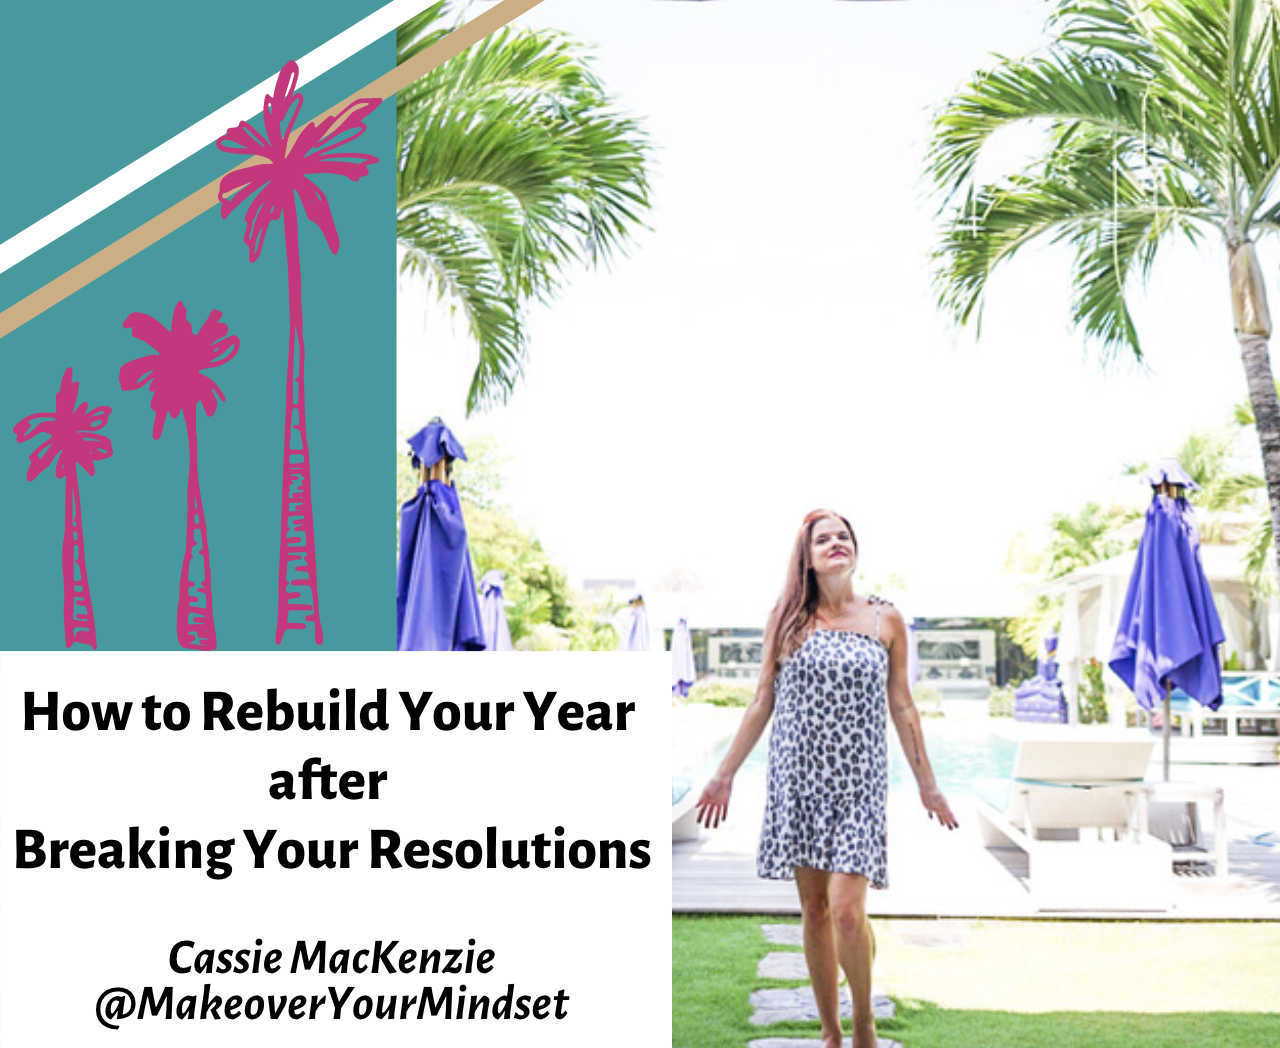 How to Rebuild Your Year After Breaking Your Resolutions with Cassie MacKenzie